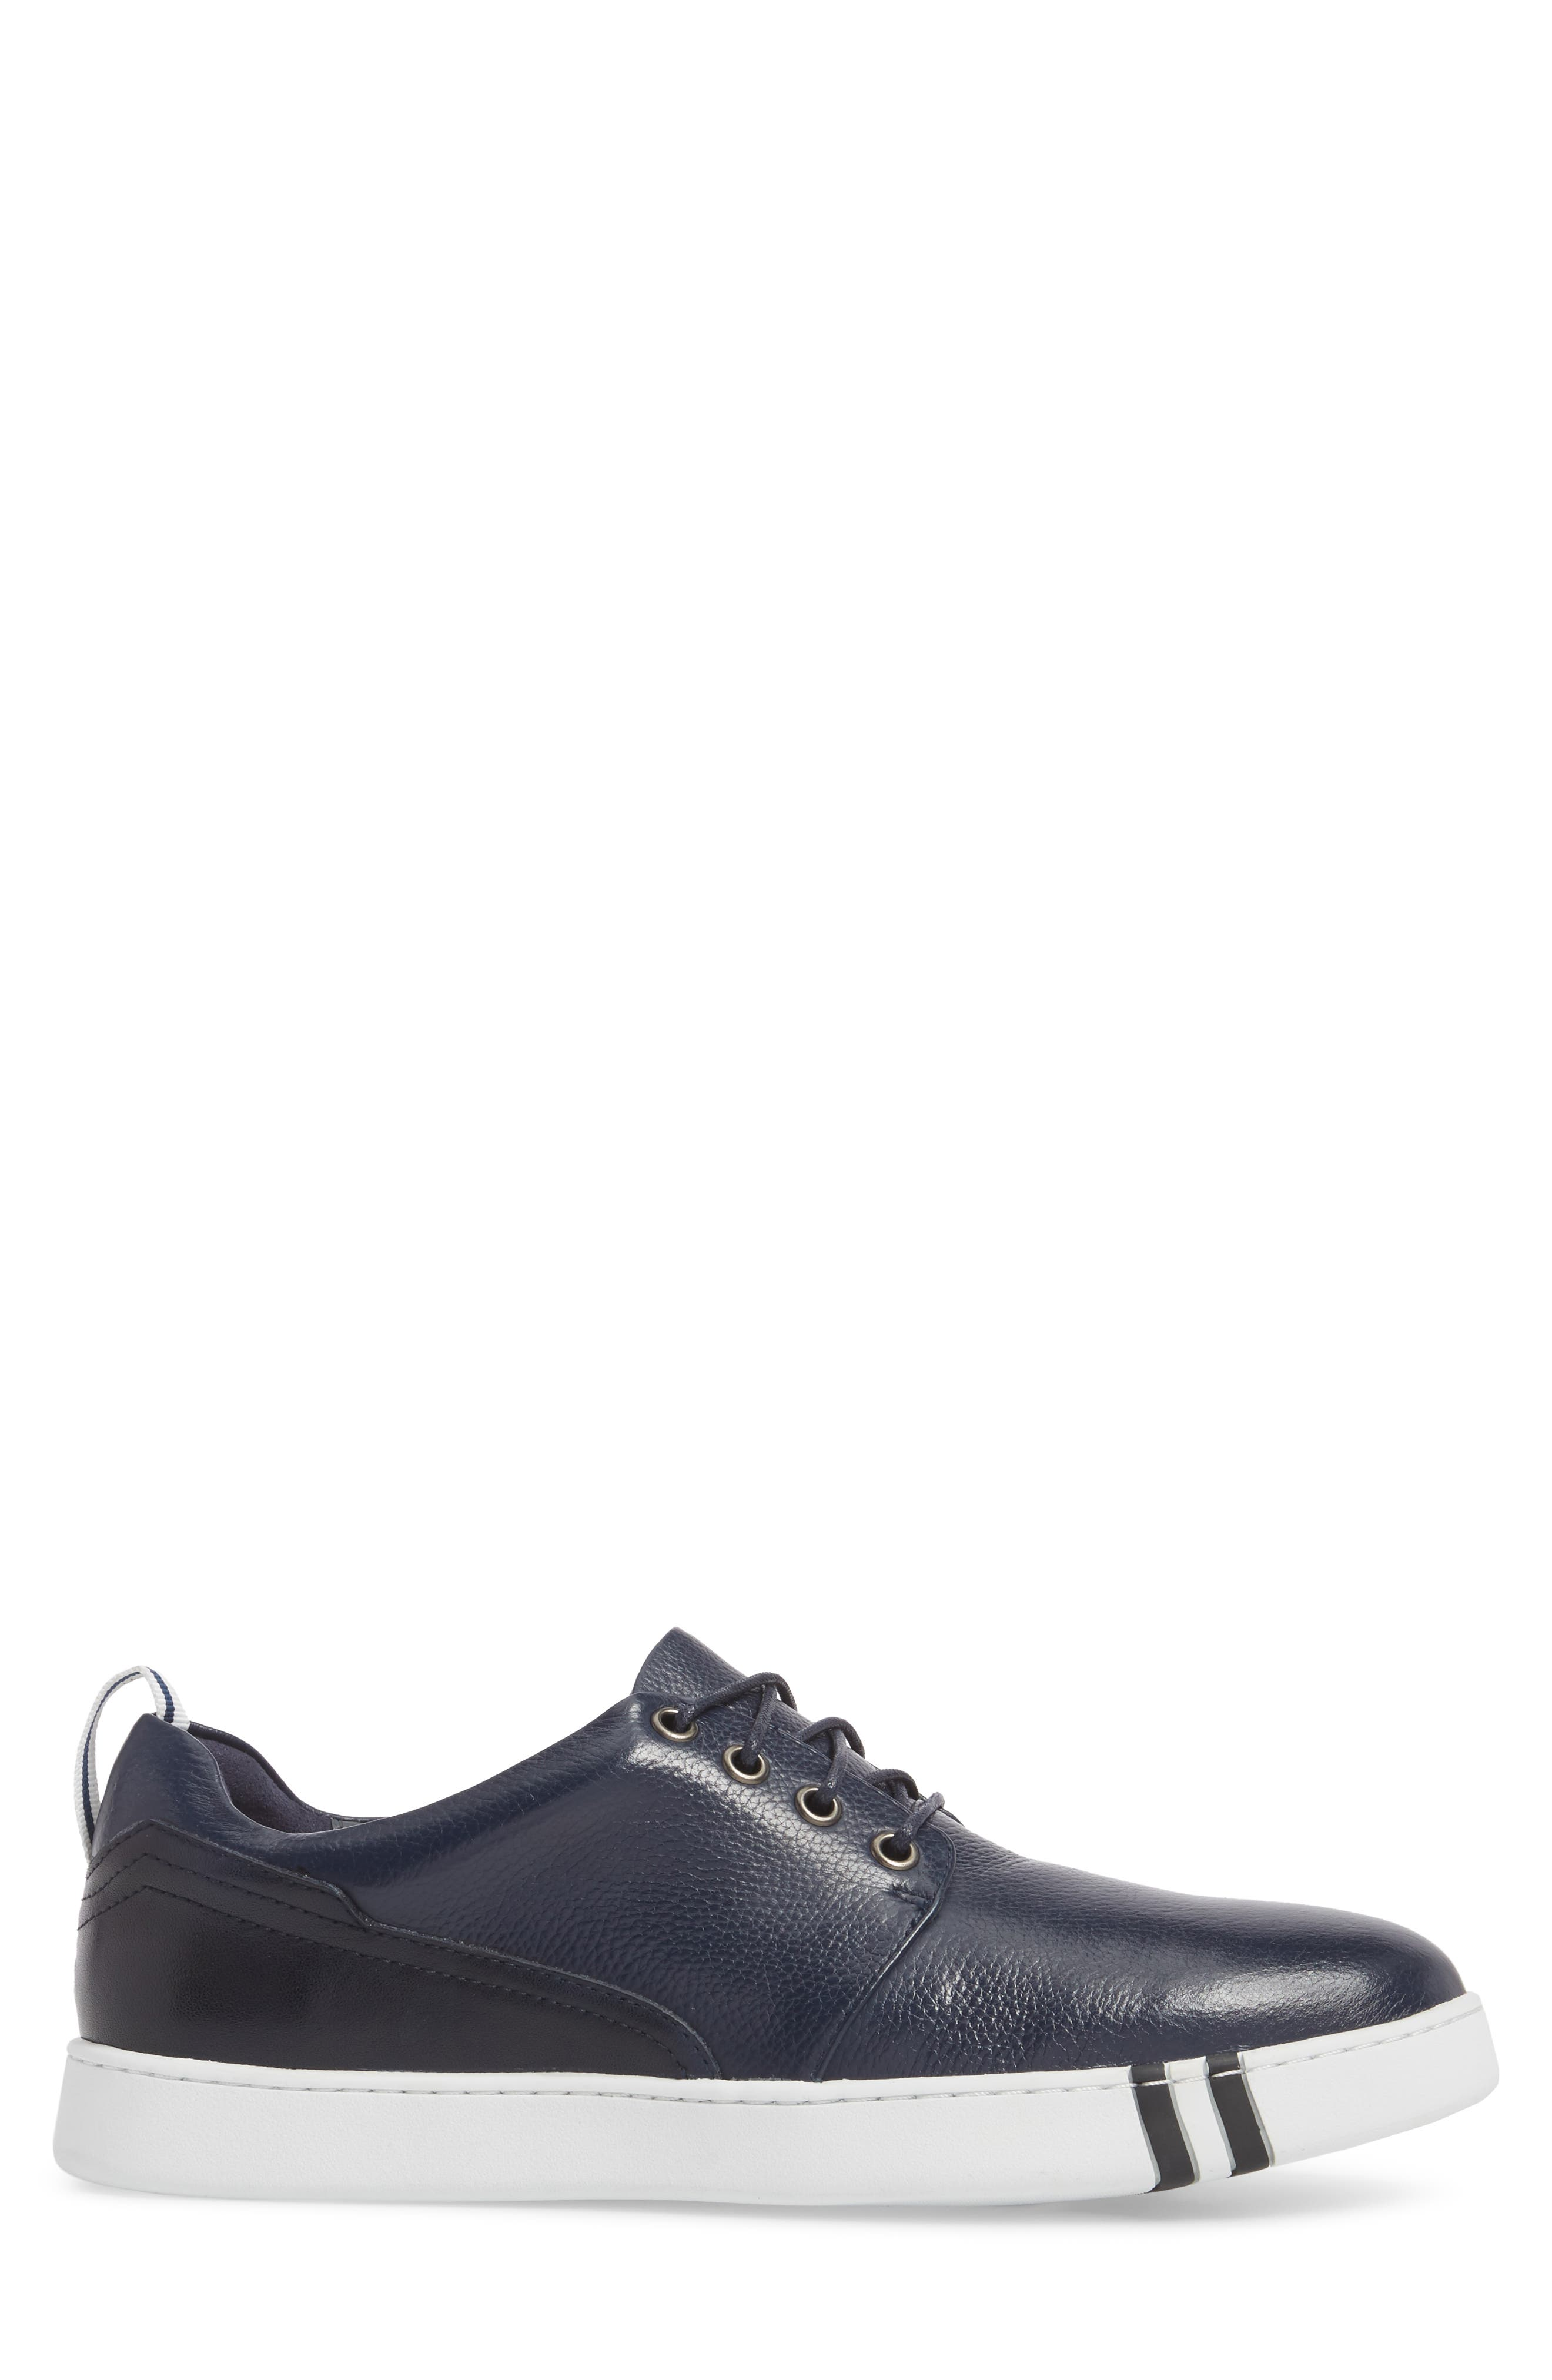 Kings Low Top Sneaker,                             Alternate thumbnail 3, color,                             Navy Leather